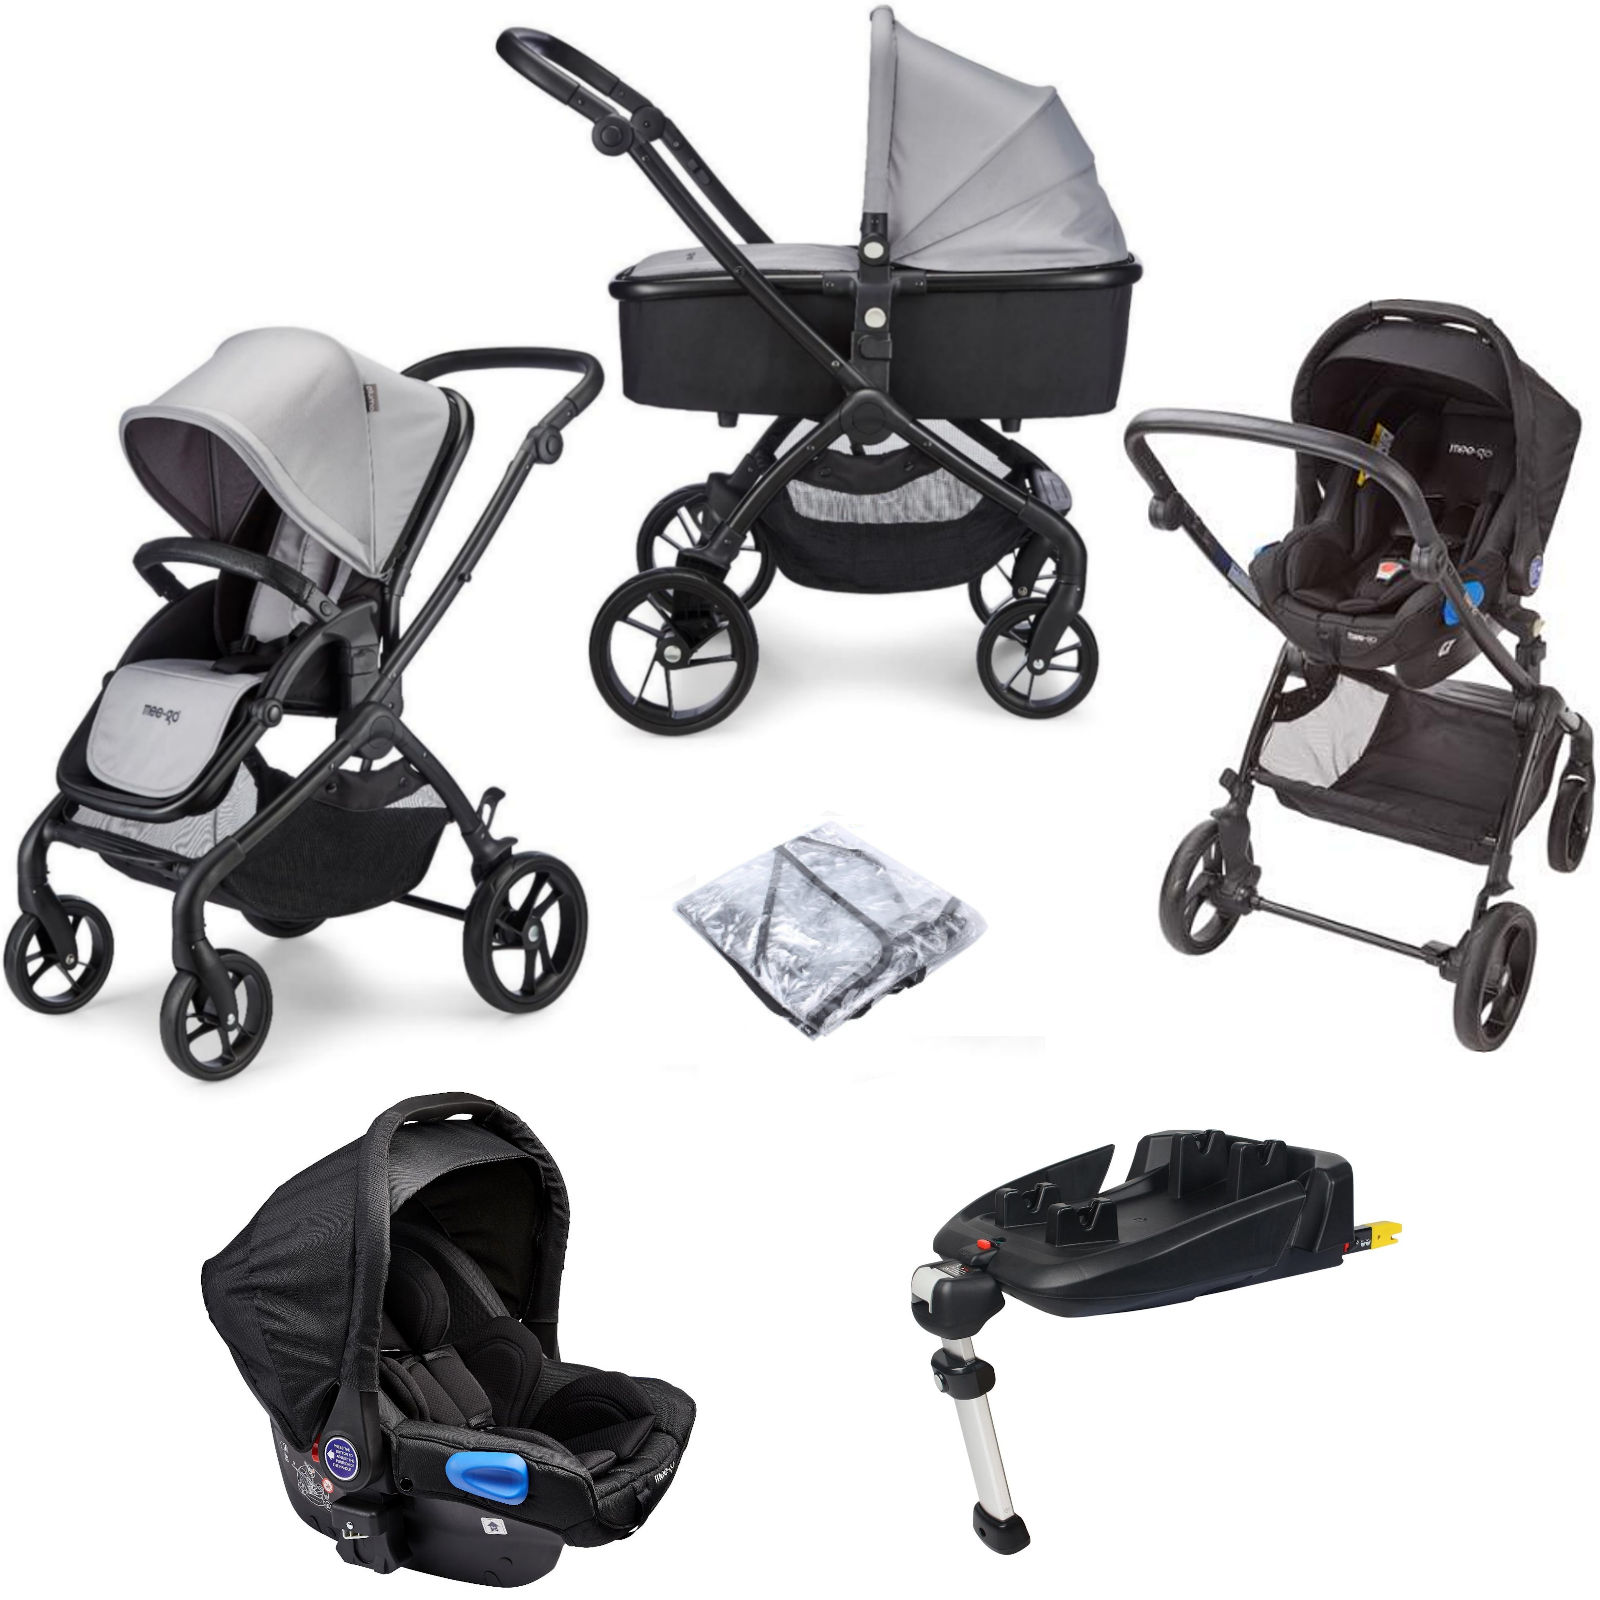 Mee-Go Plumo (Otto Car Seat) Travel System with ISOFIX Base - Ash Grey